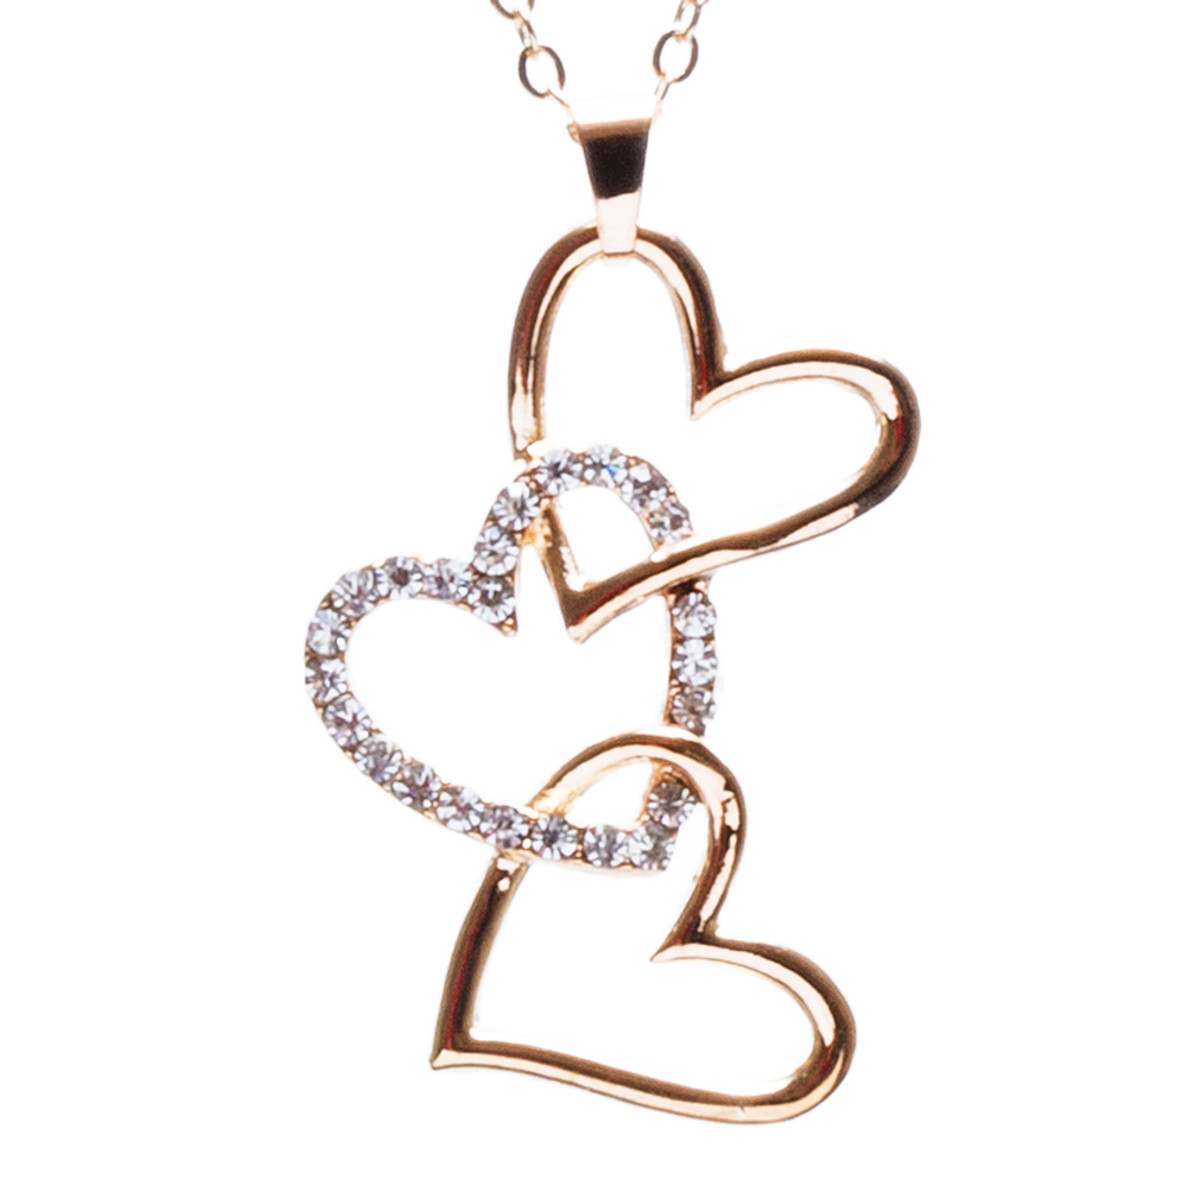 Accessoriesforever valentines jewelry crystal rhinestone triple valentines jewelry crystal rhinestone triple hearts pendant necklace n89 gold aloadofball Images